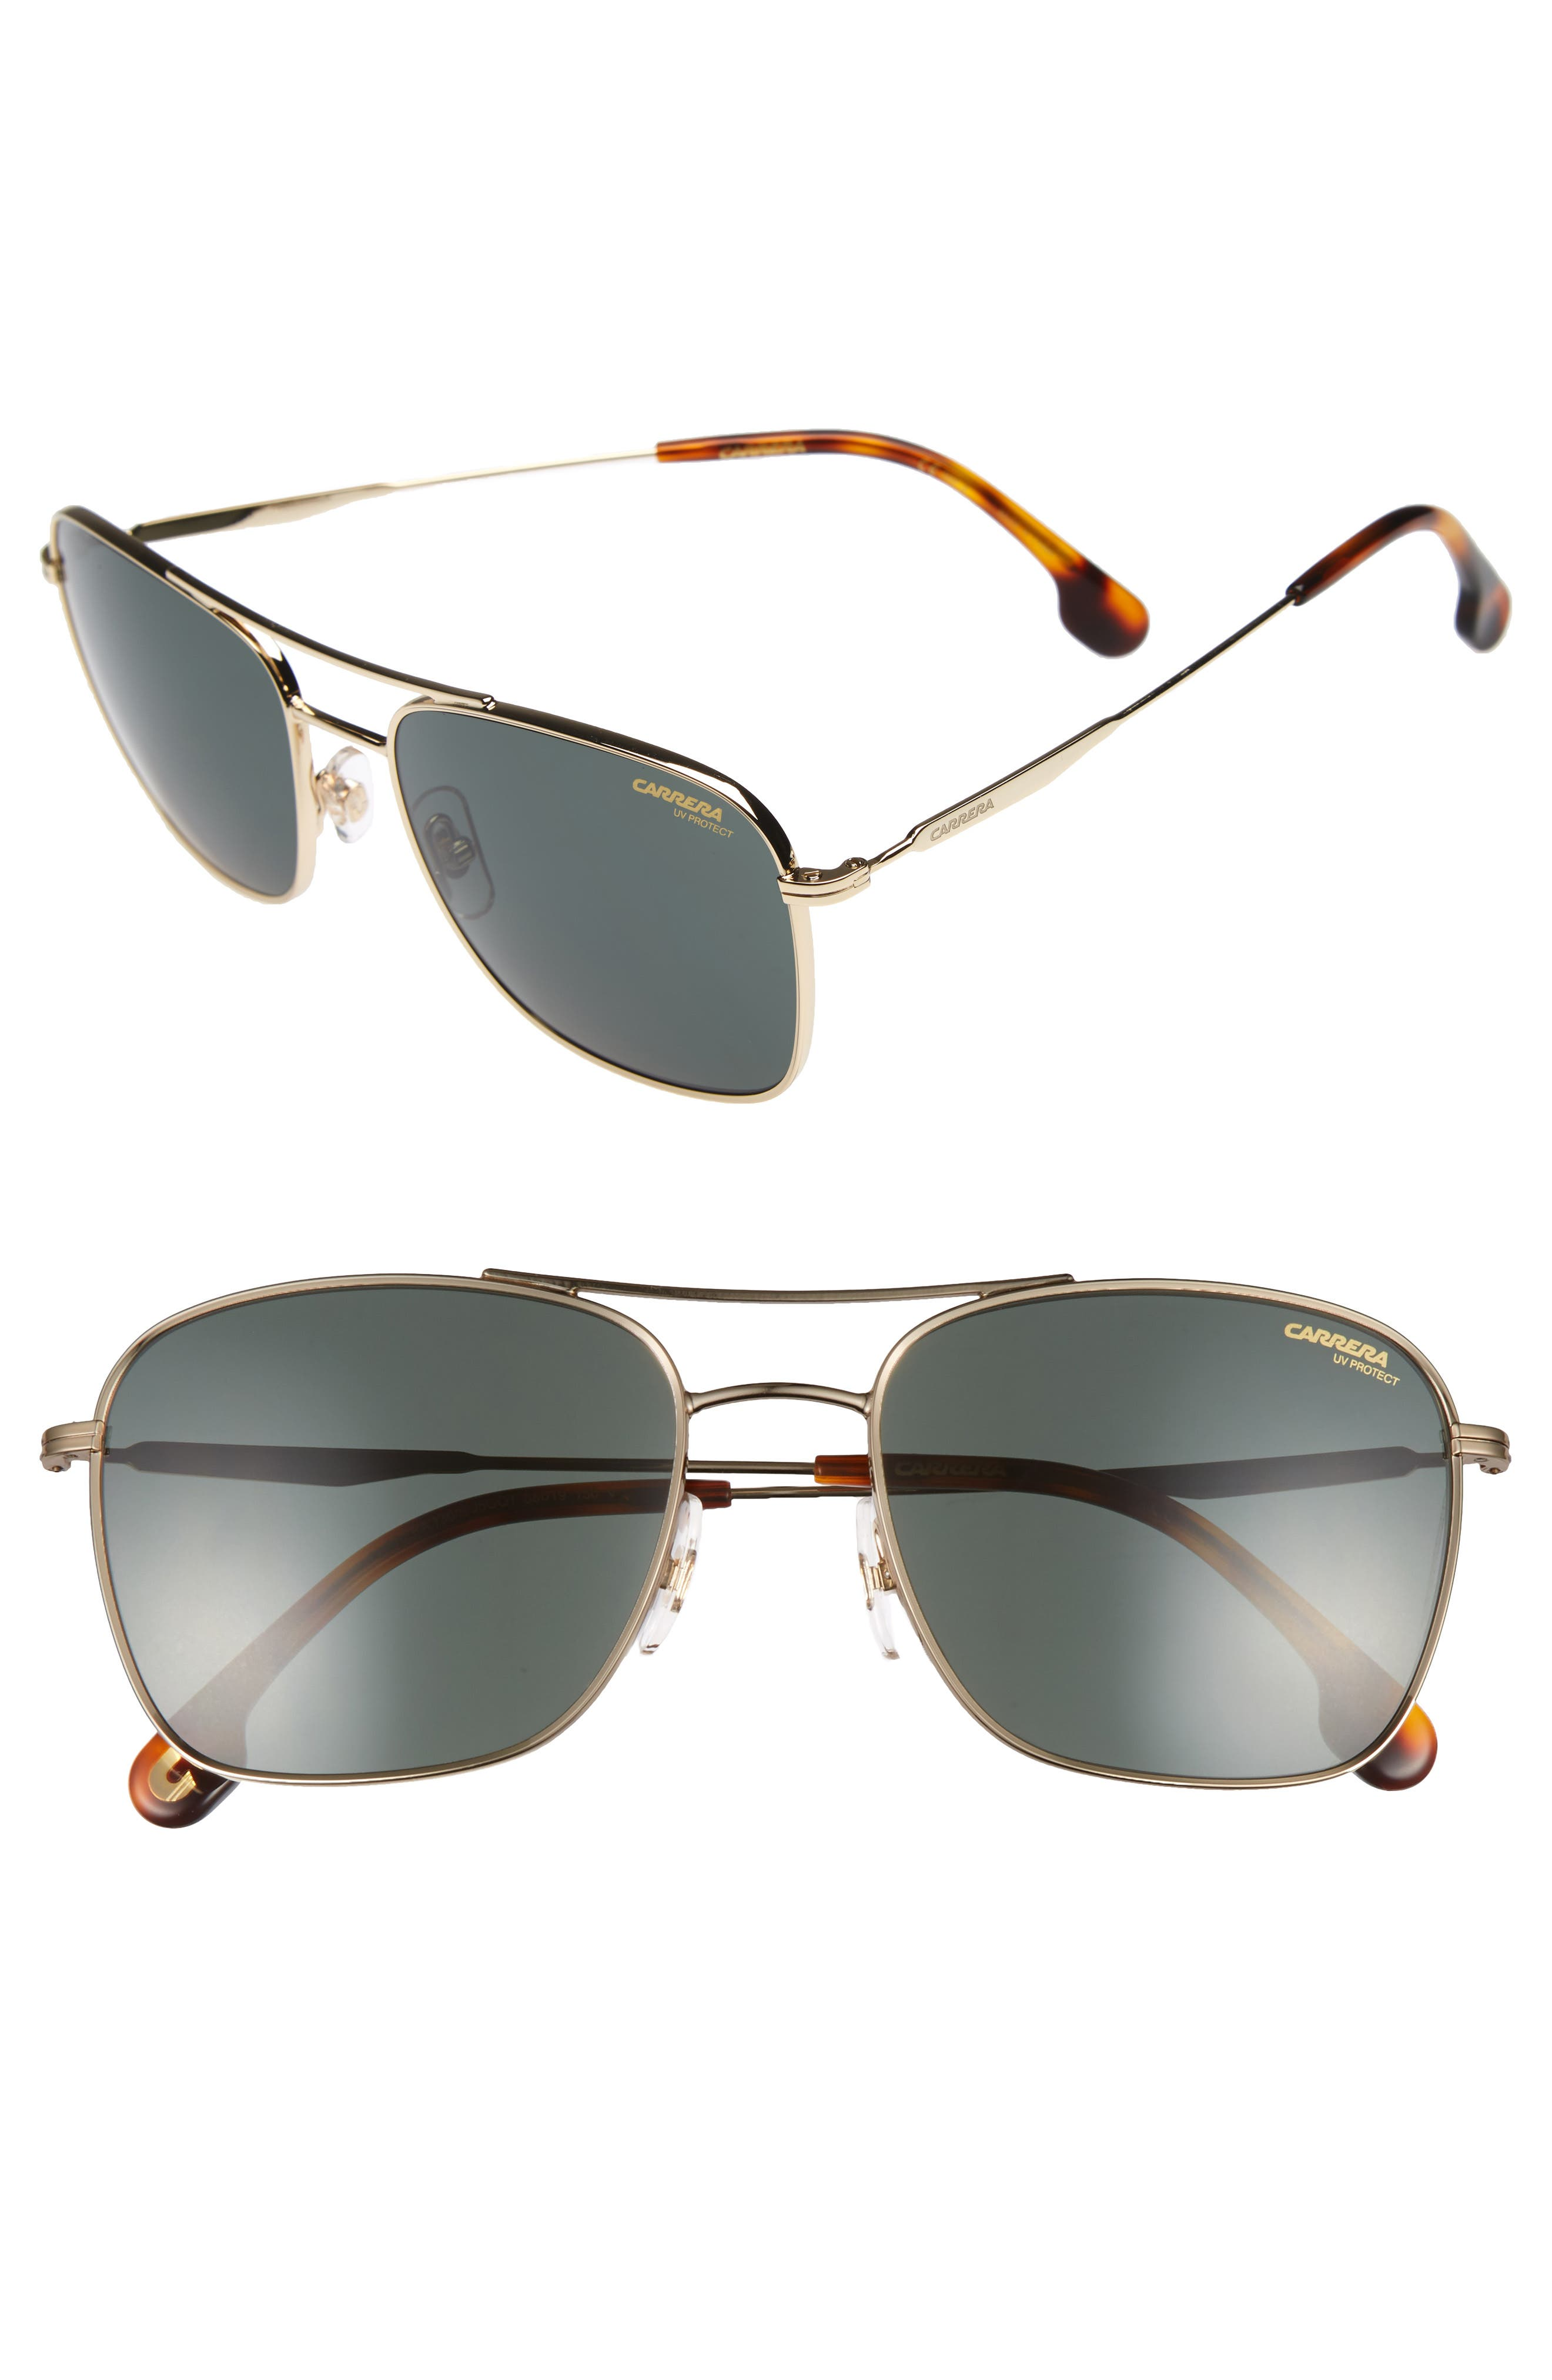 Carrera Eyewear 5m Navigator Sunglasses - Gold